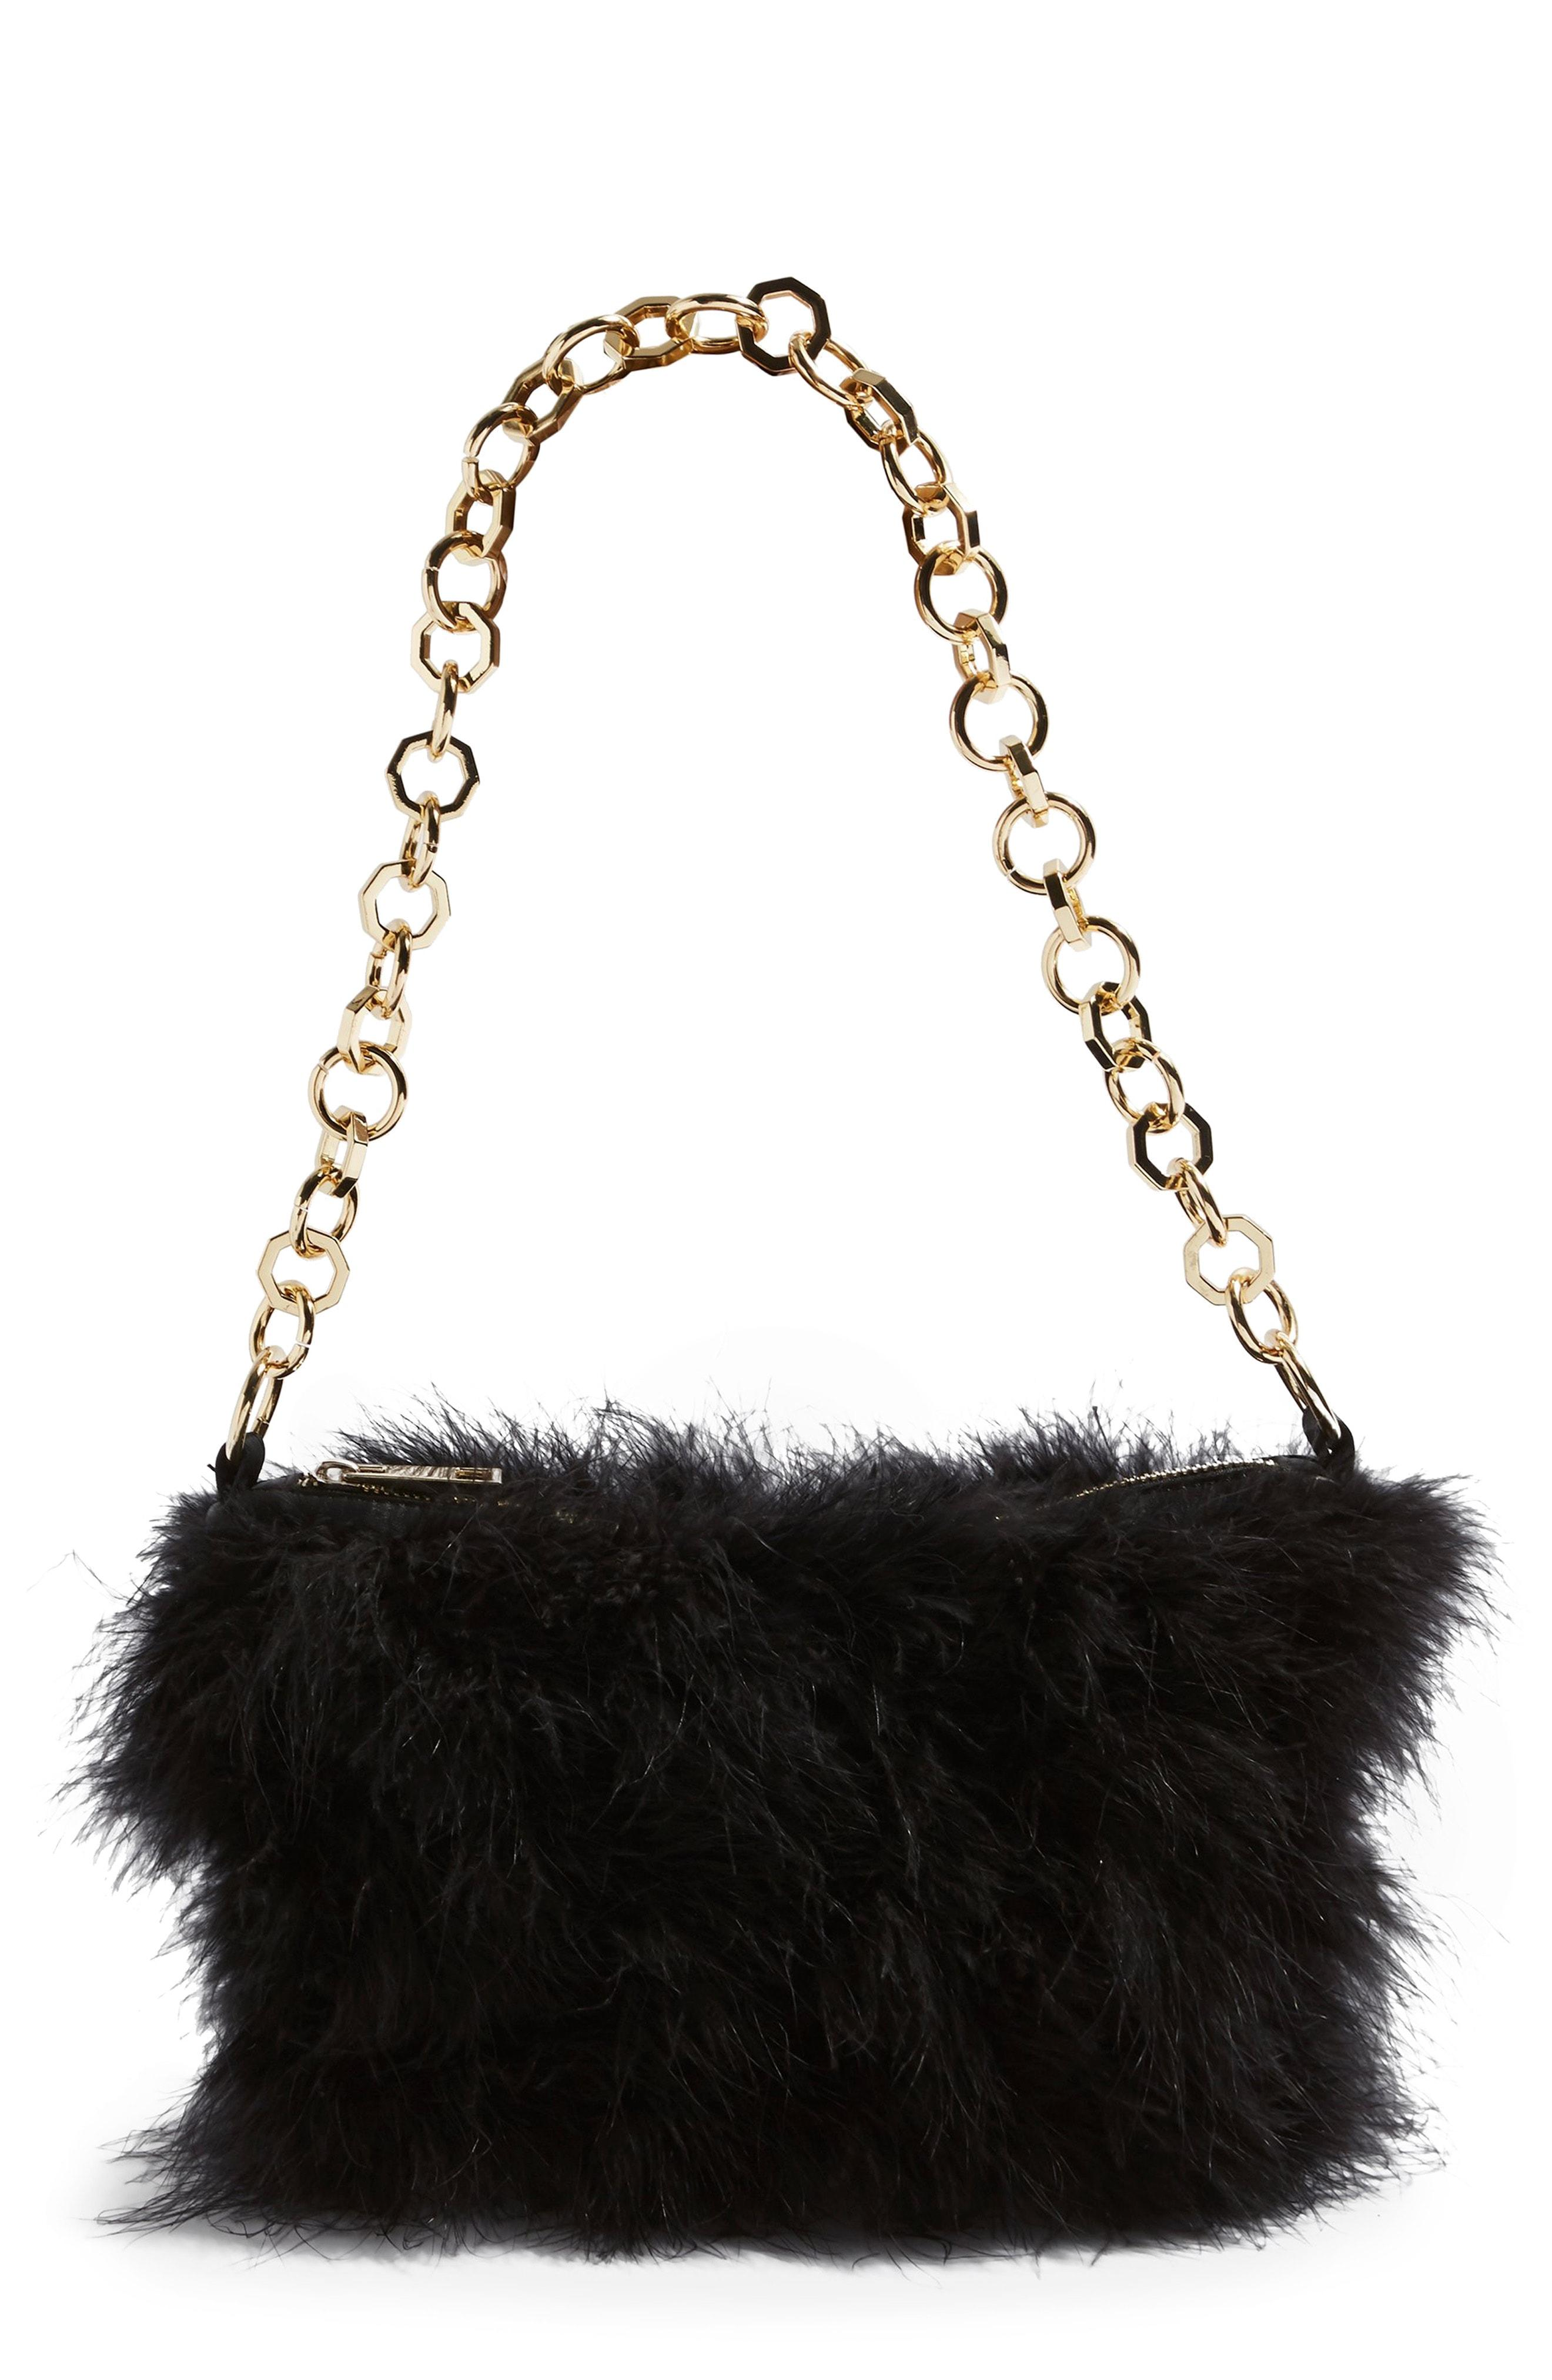 Lyst - TOPSHOP Flo Marabou Feather Shoulder Bag - in Black 9c0077fce45ca